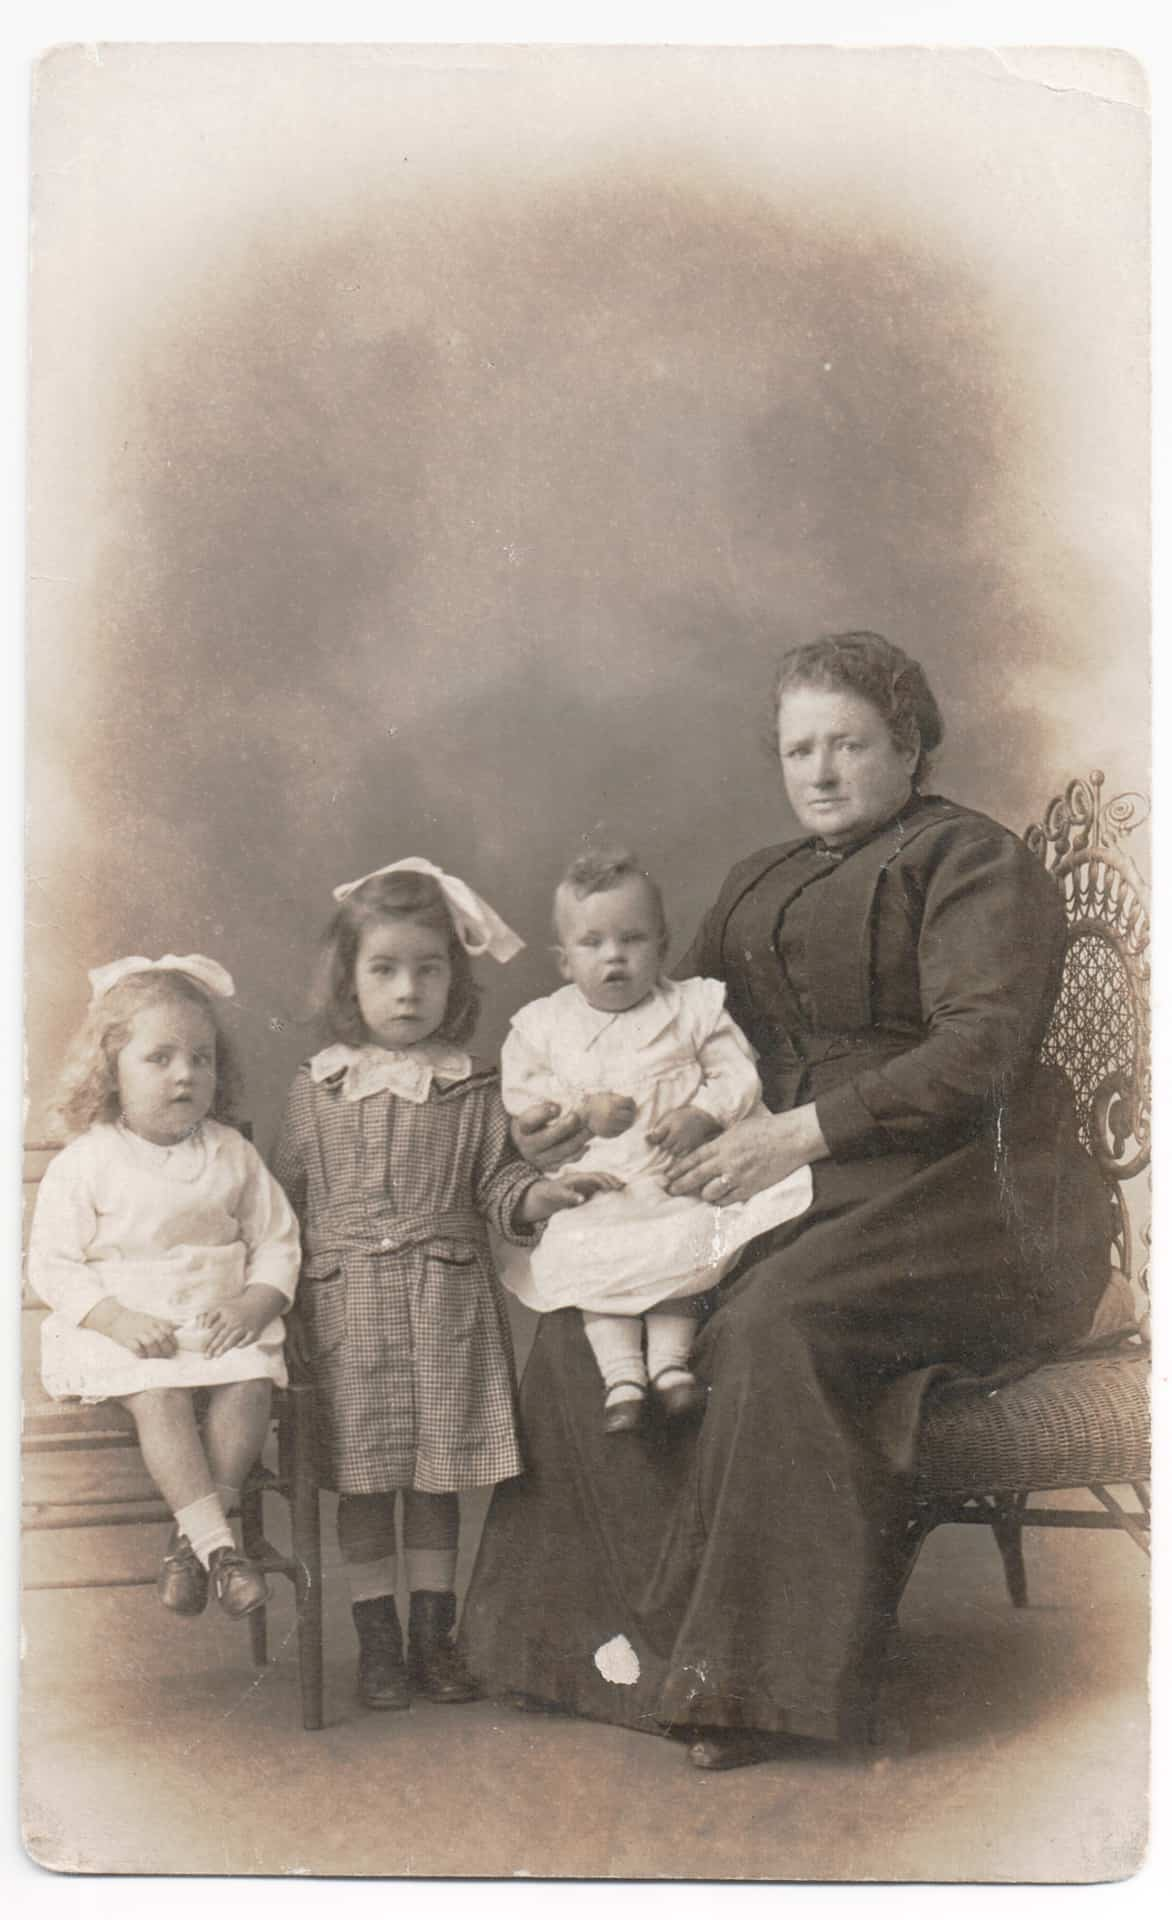 This is a studio photo of my mom who is in the middle, with her granny. We knew her as Granny Sadler. My mom, is probably about 4, so it's taken in 1918 in Dundee. The other children are her cousins. Her grandmother brought her  up as her parents had died by then.